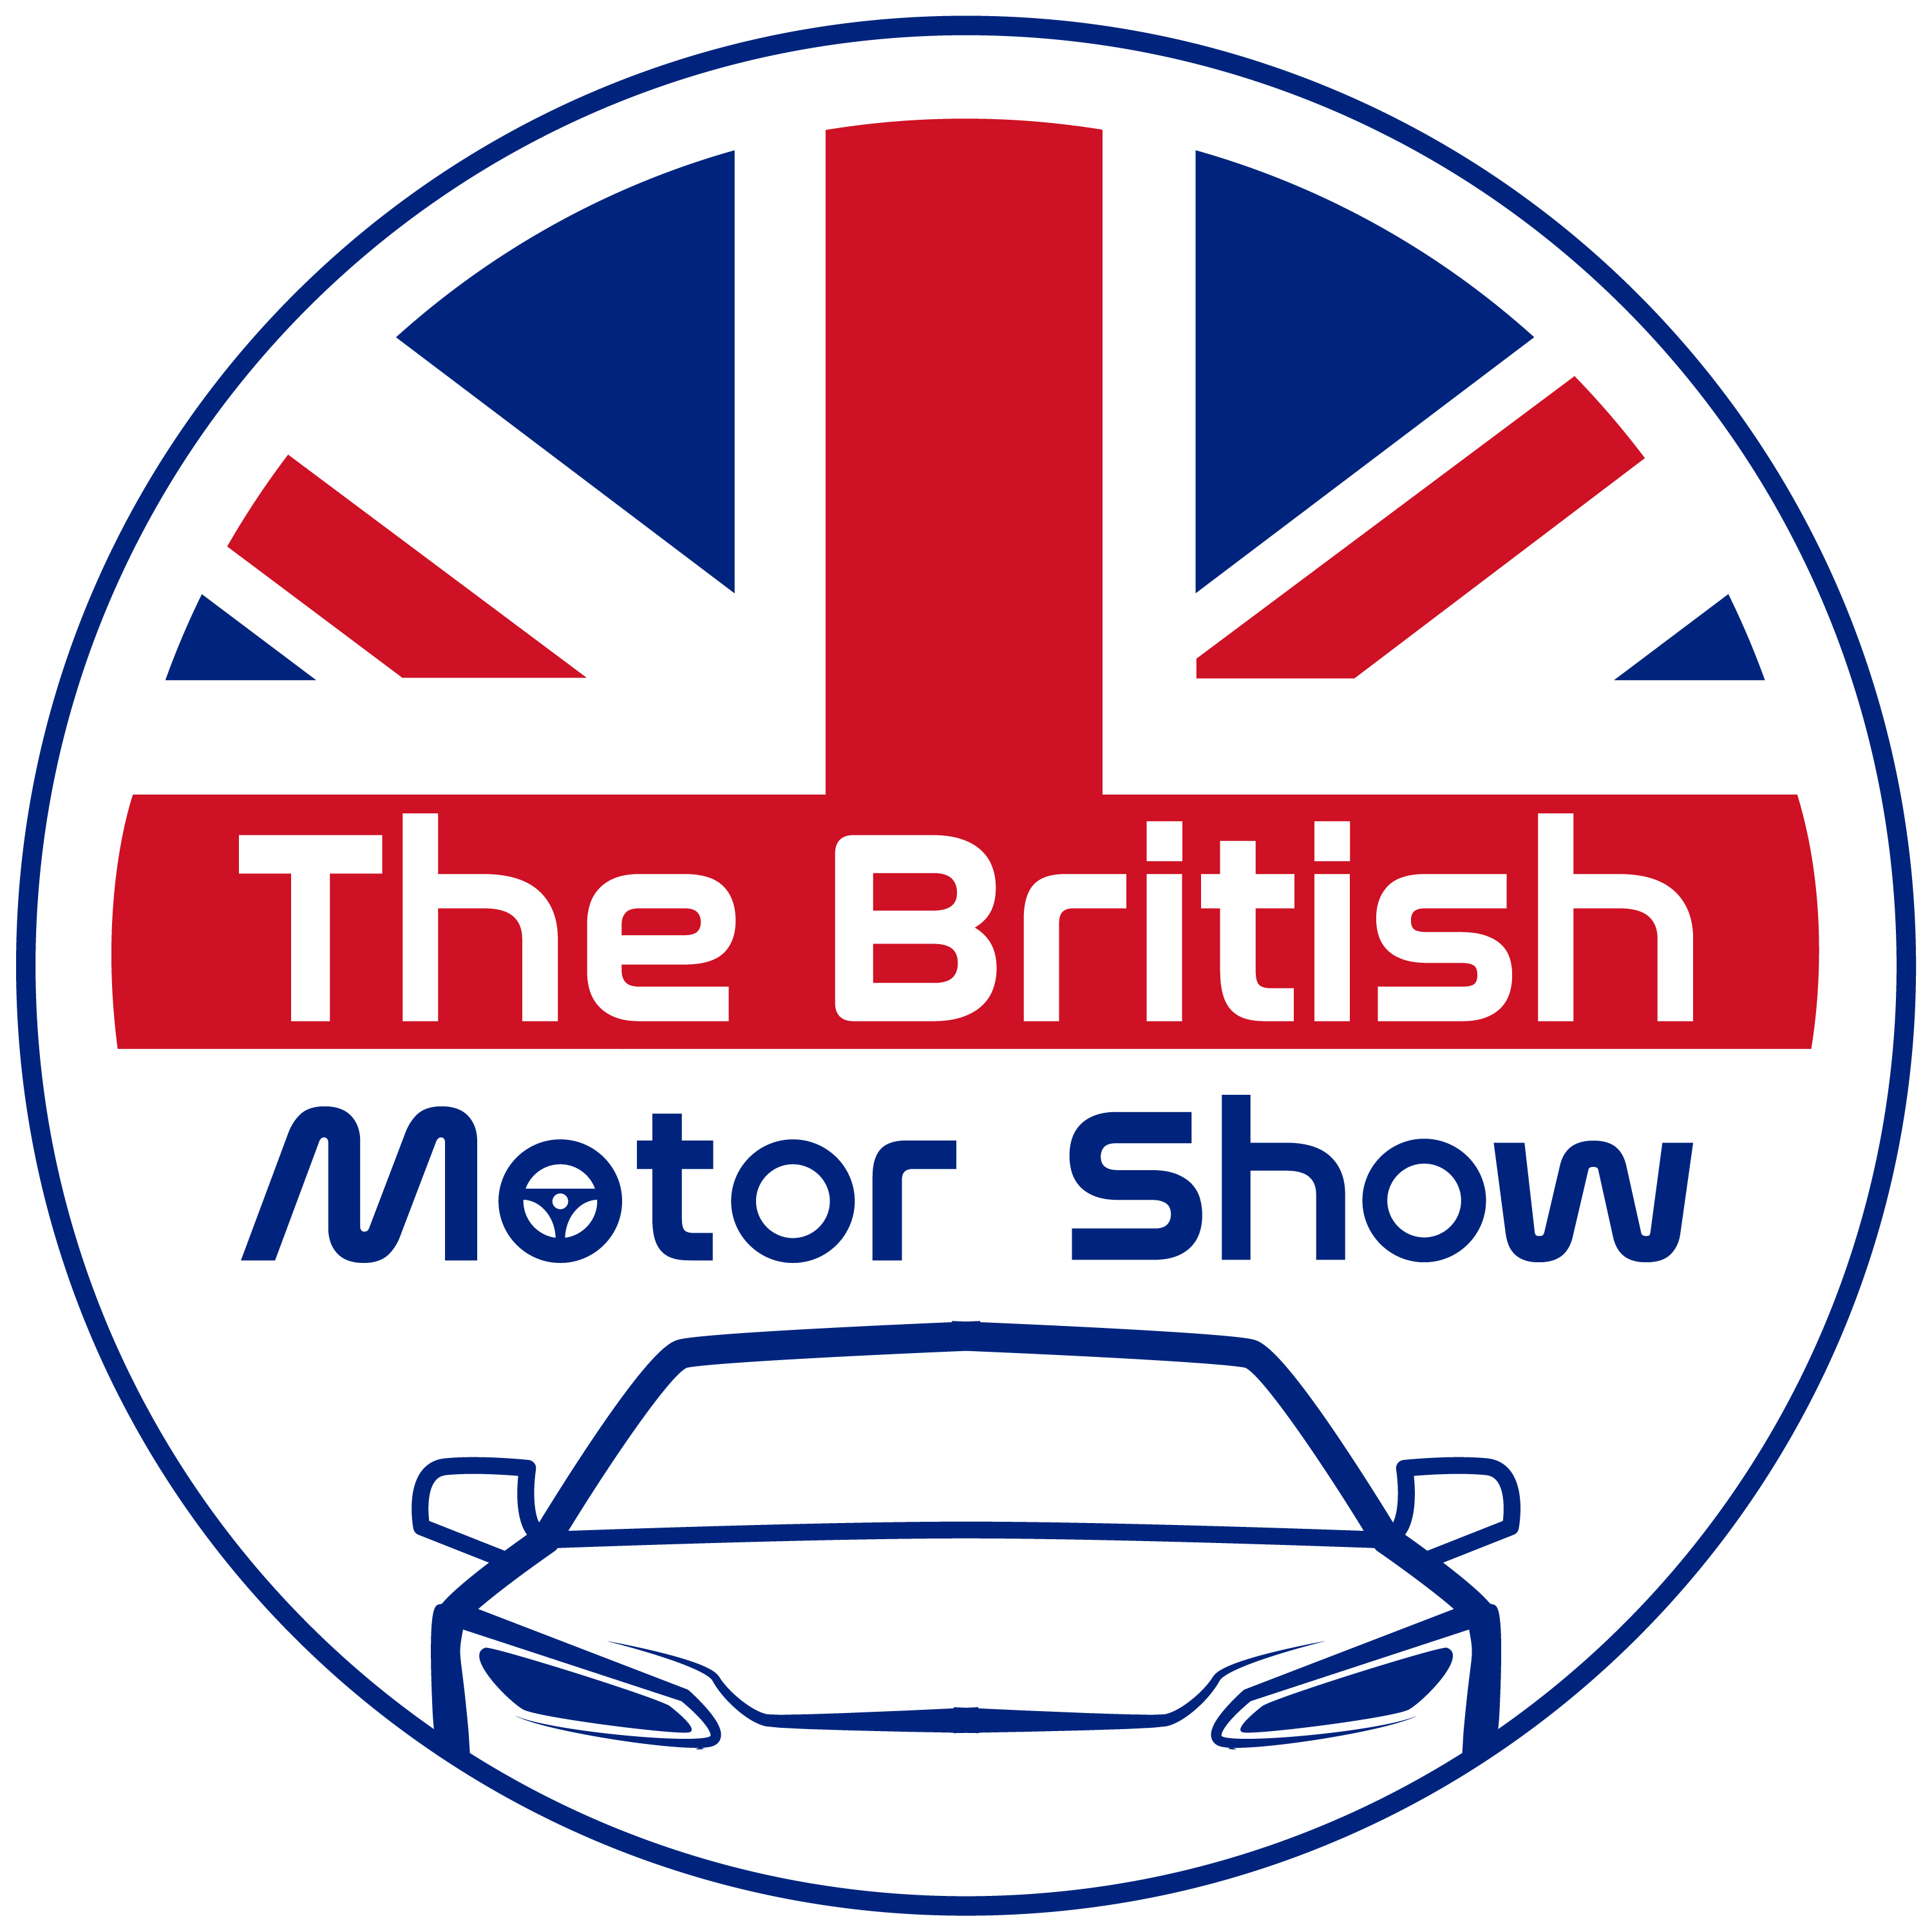 The British Motor Show arrives in Farnborough this summer